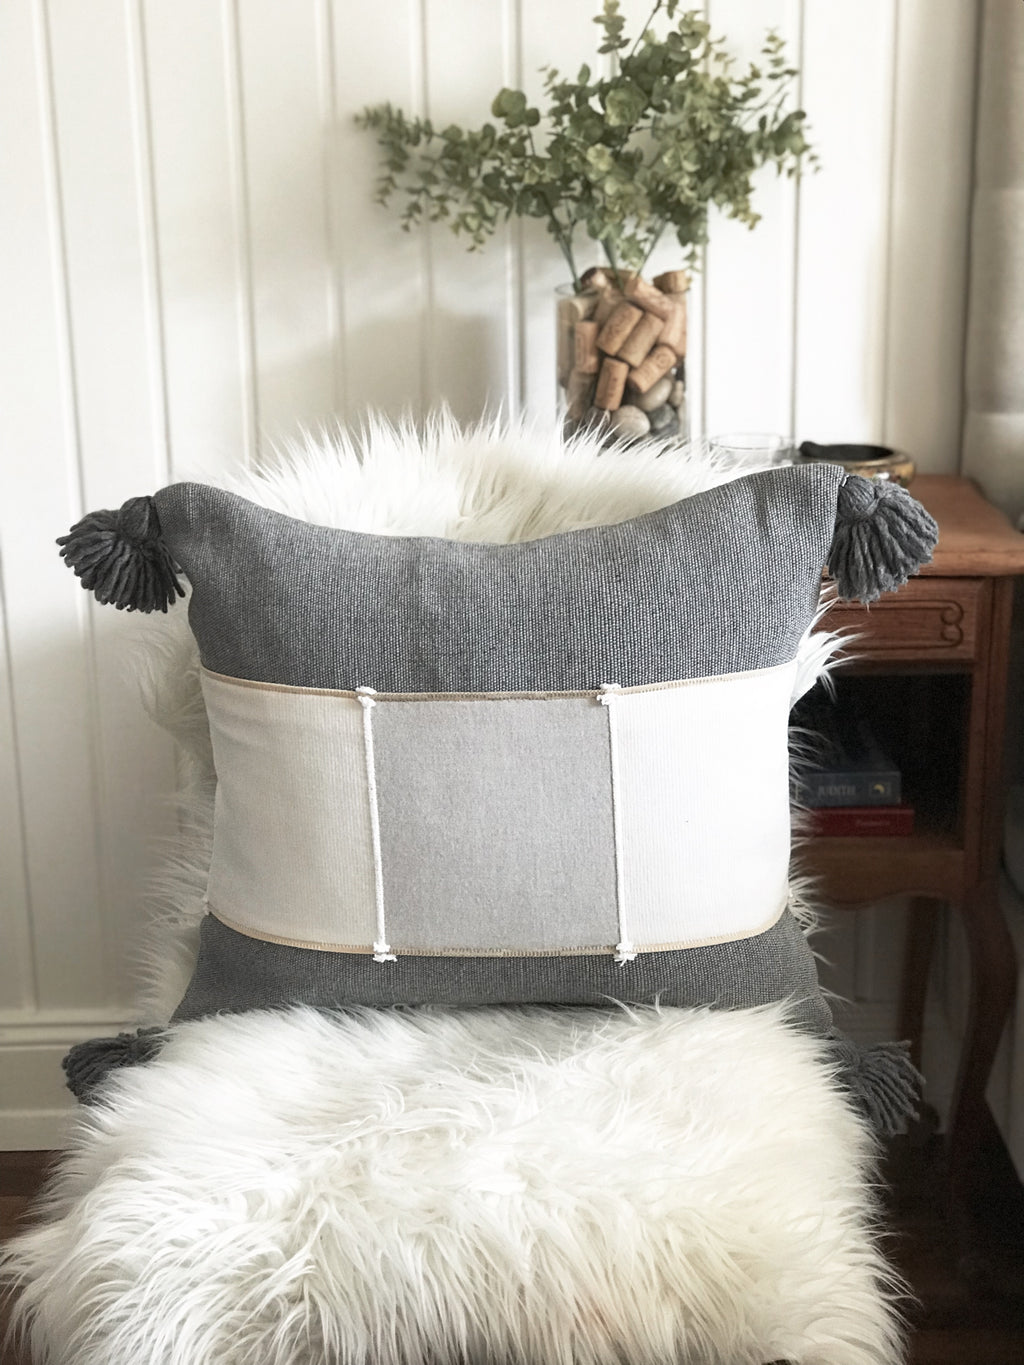 Custom Handwoven Pillow Cover w/ Pom Poms – GREY